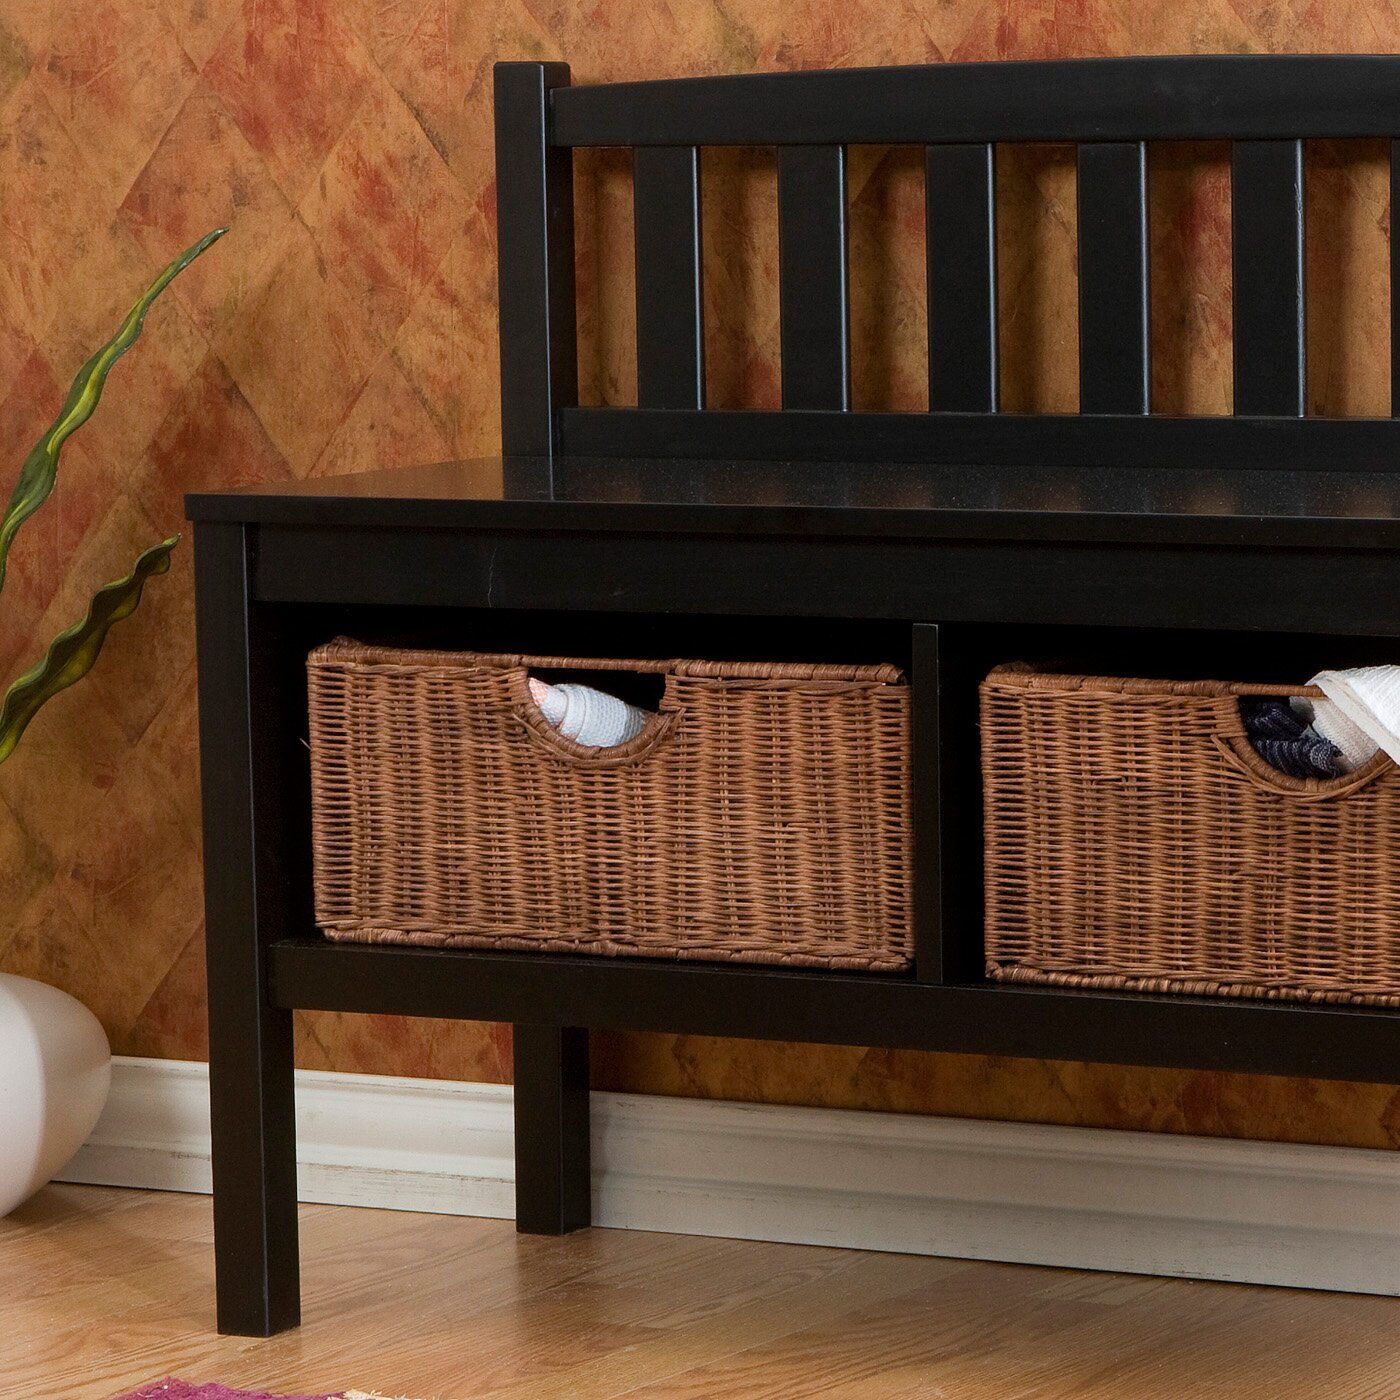 Foyer Bench With Baskets : Beachcrest home offerman wood storage entryway bench with